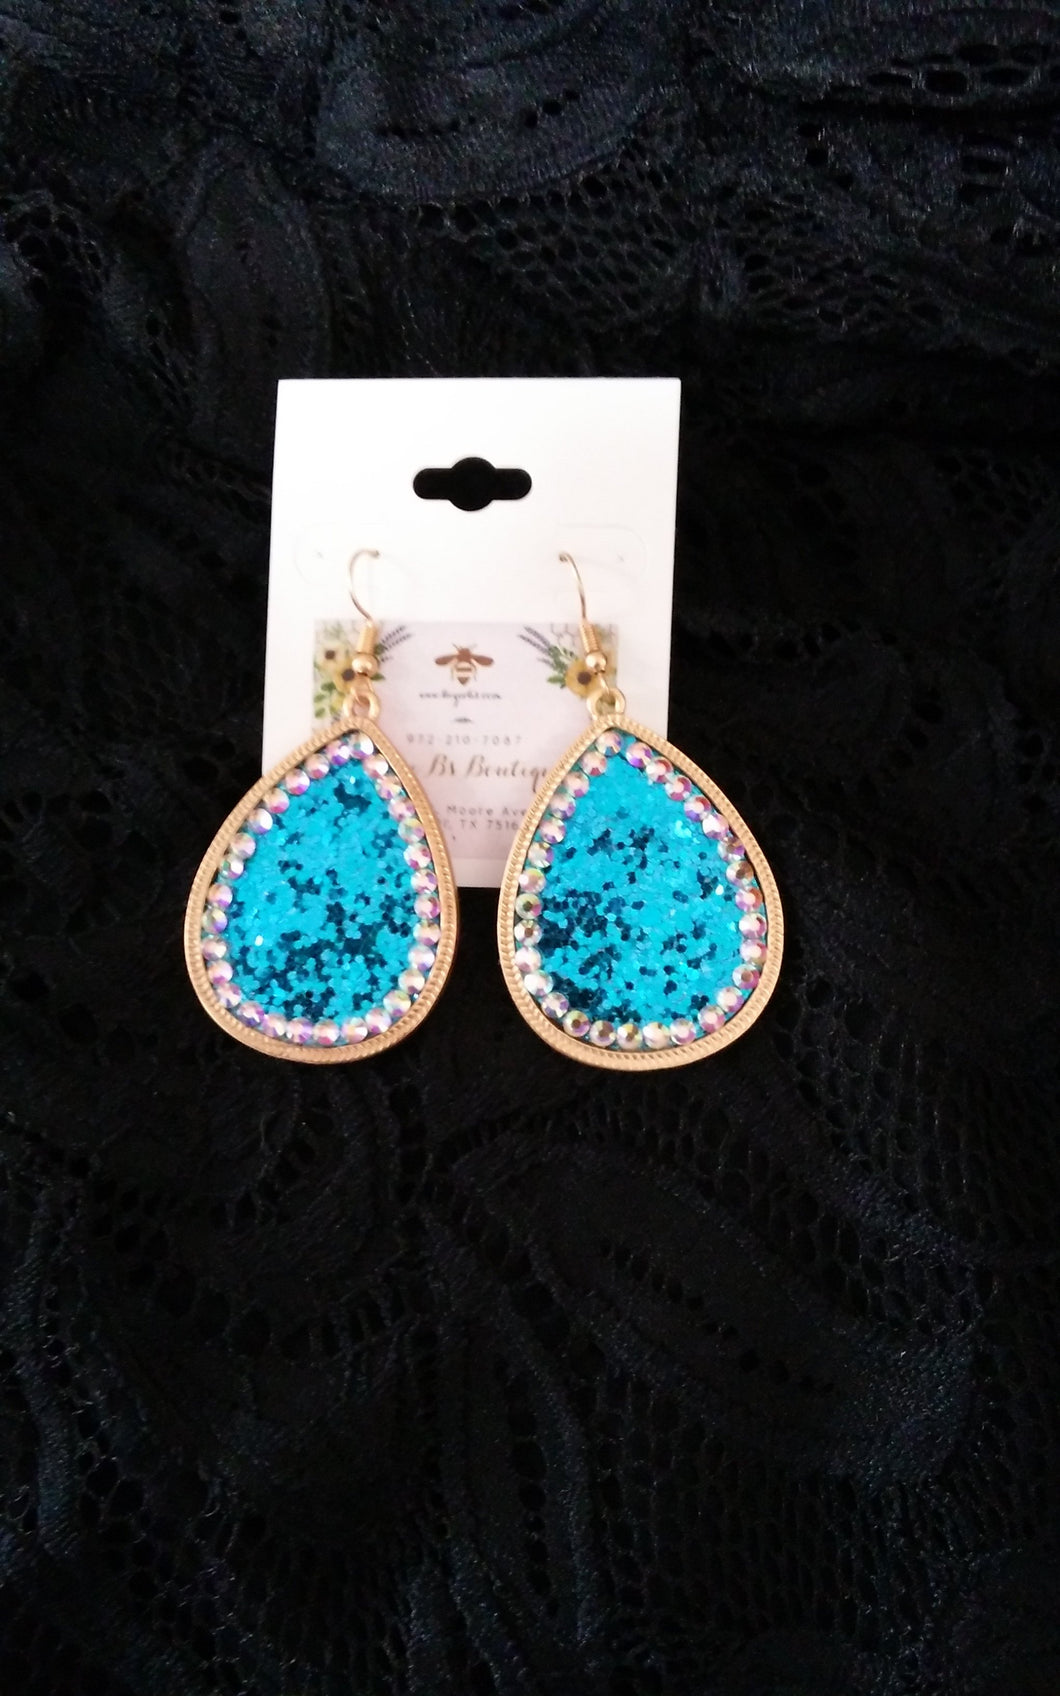 Crystal Glitter Earrings # 73561